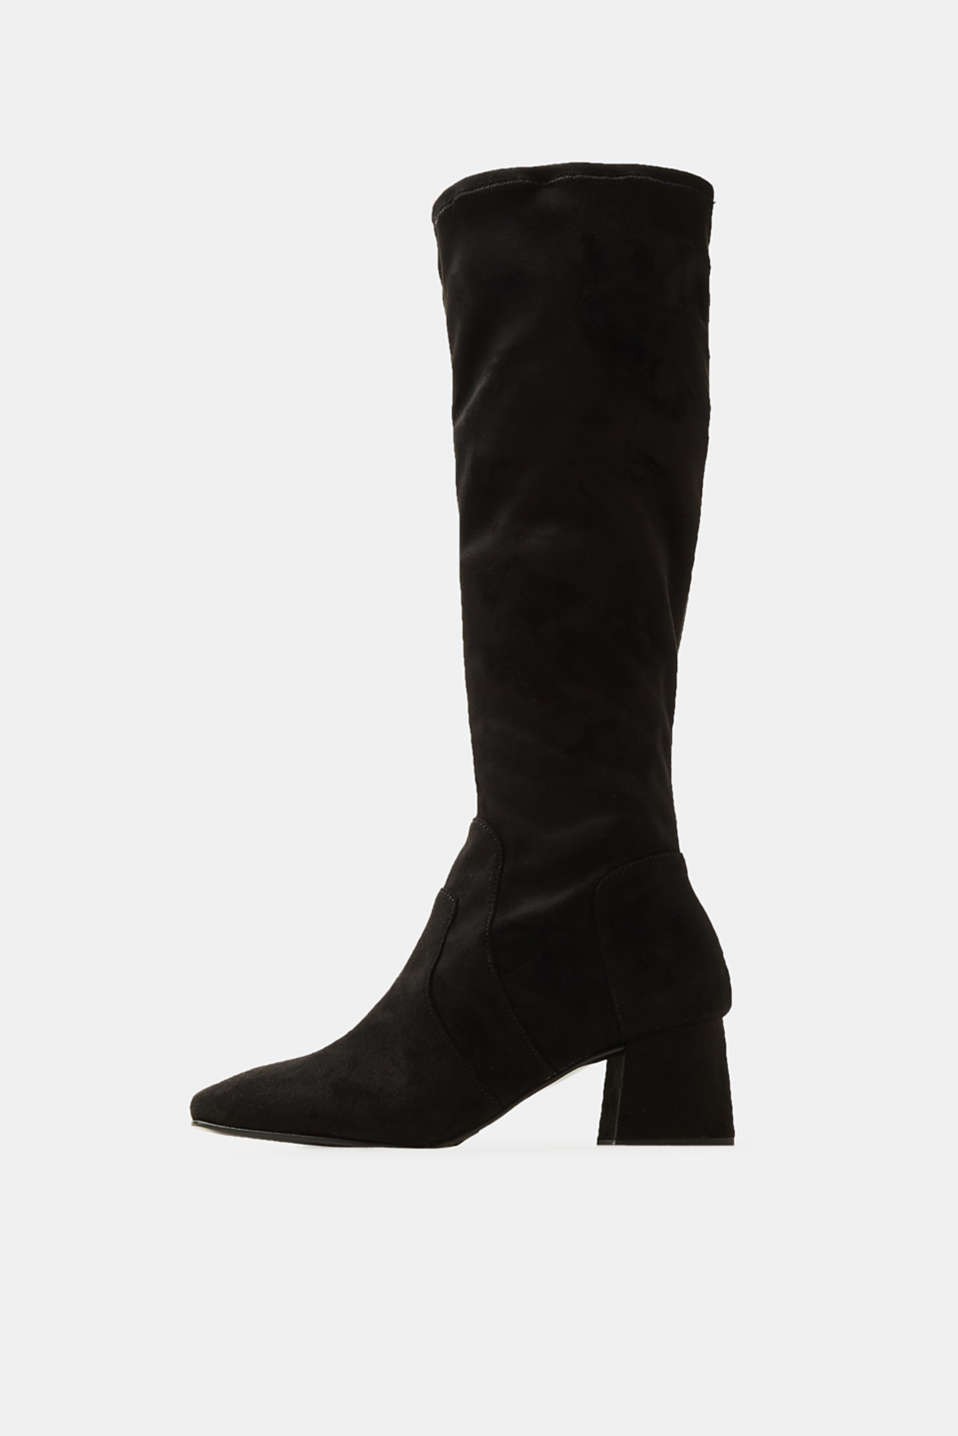 Esprit - Long boots with block heel, made of velour